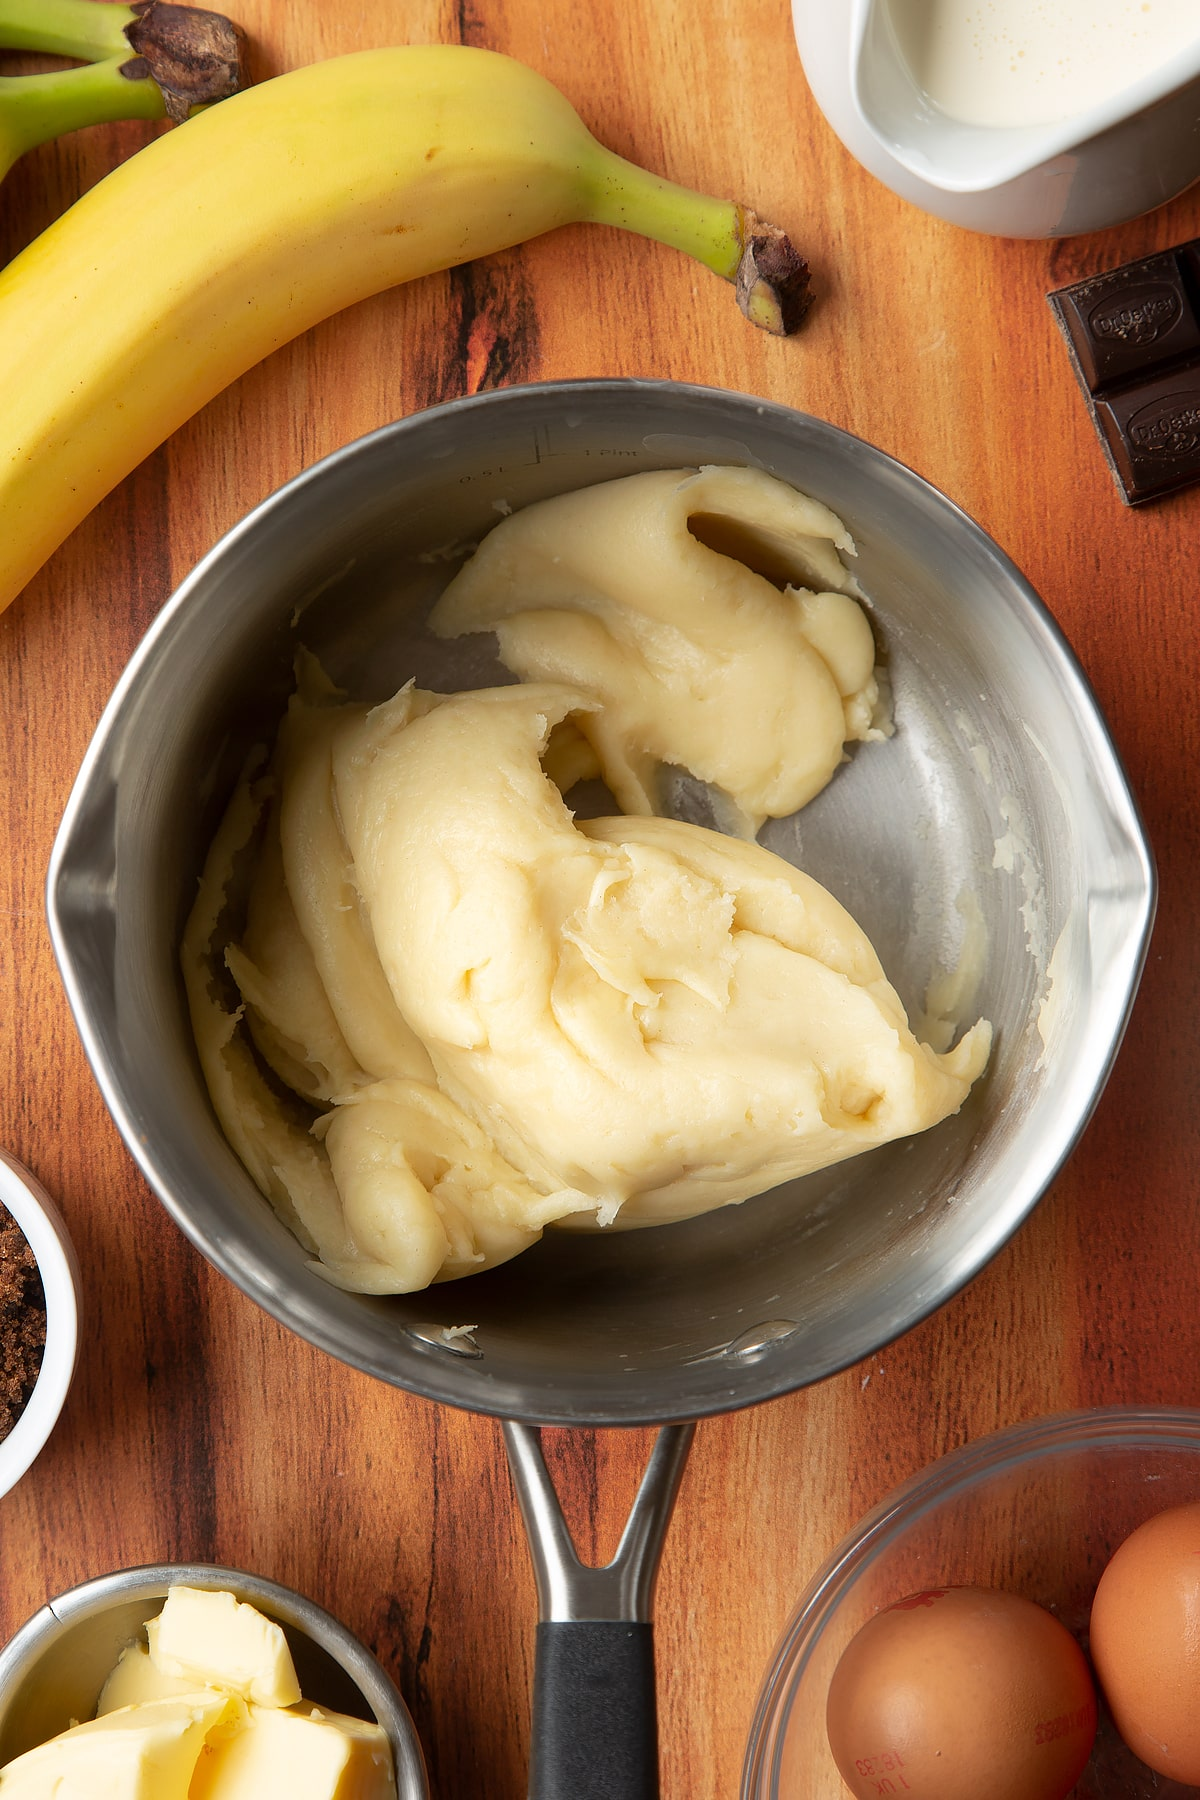 Overhead shot of choux pastry dough in a pan